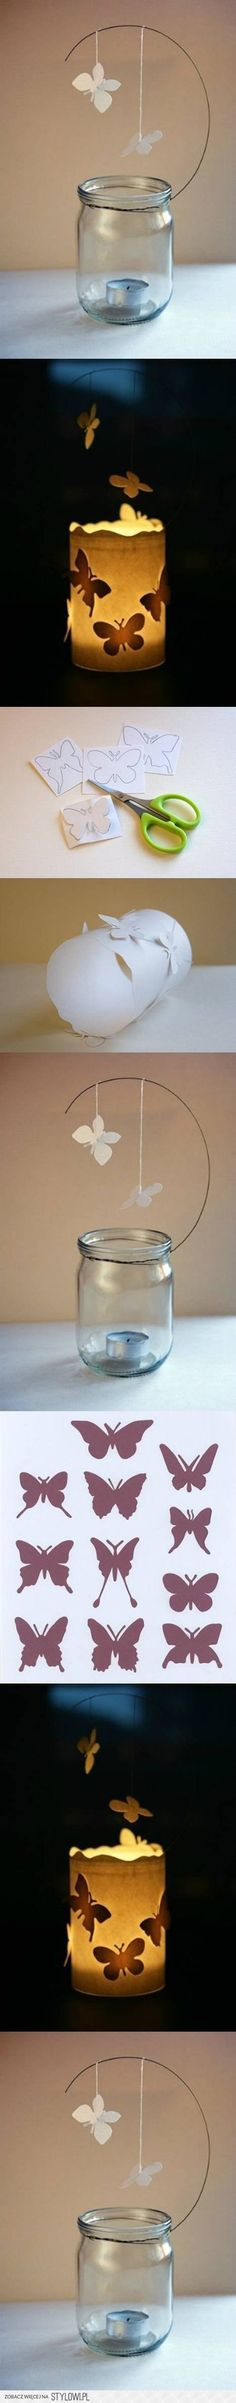 DIY Butterfly Candle Decor Ideas DIY Projects | UsefulD…